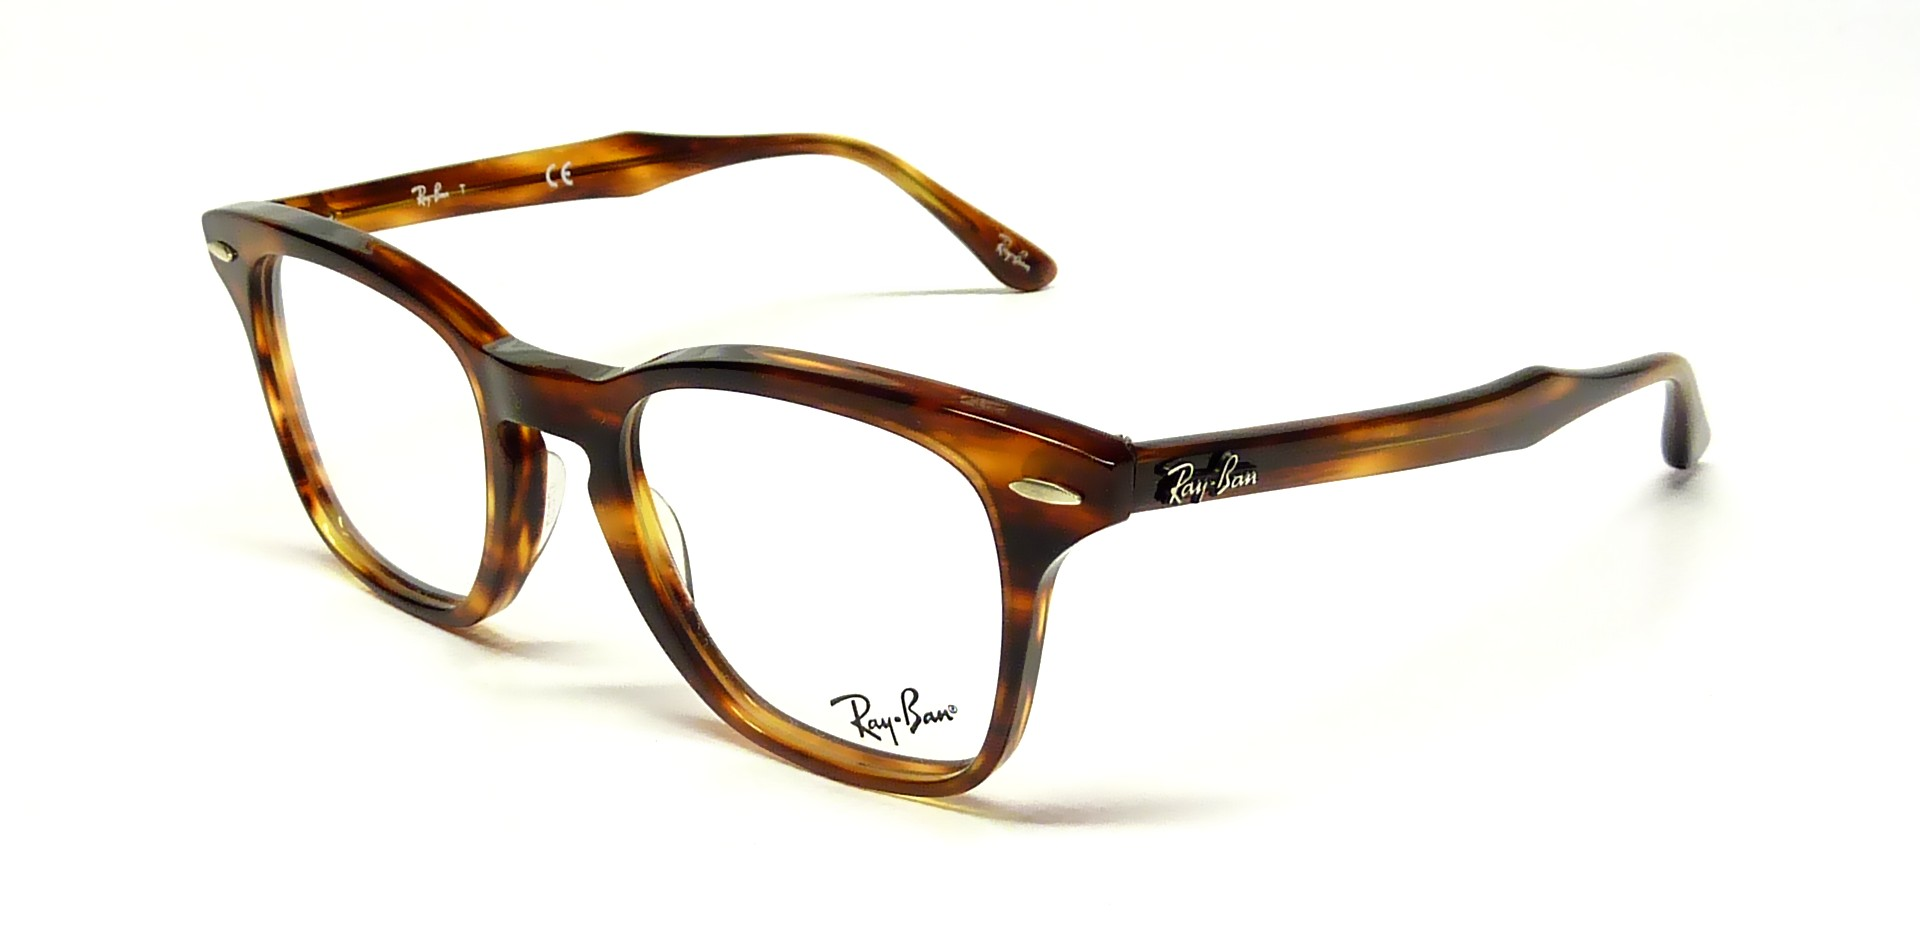 2f149d63c4 Ray Ban 5244 Review